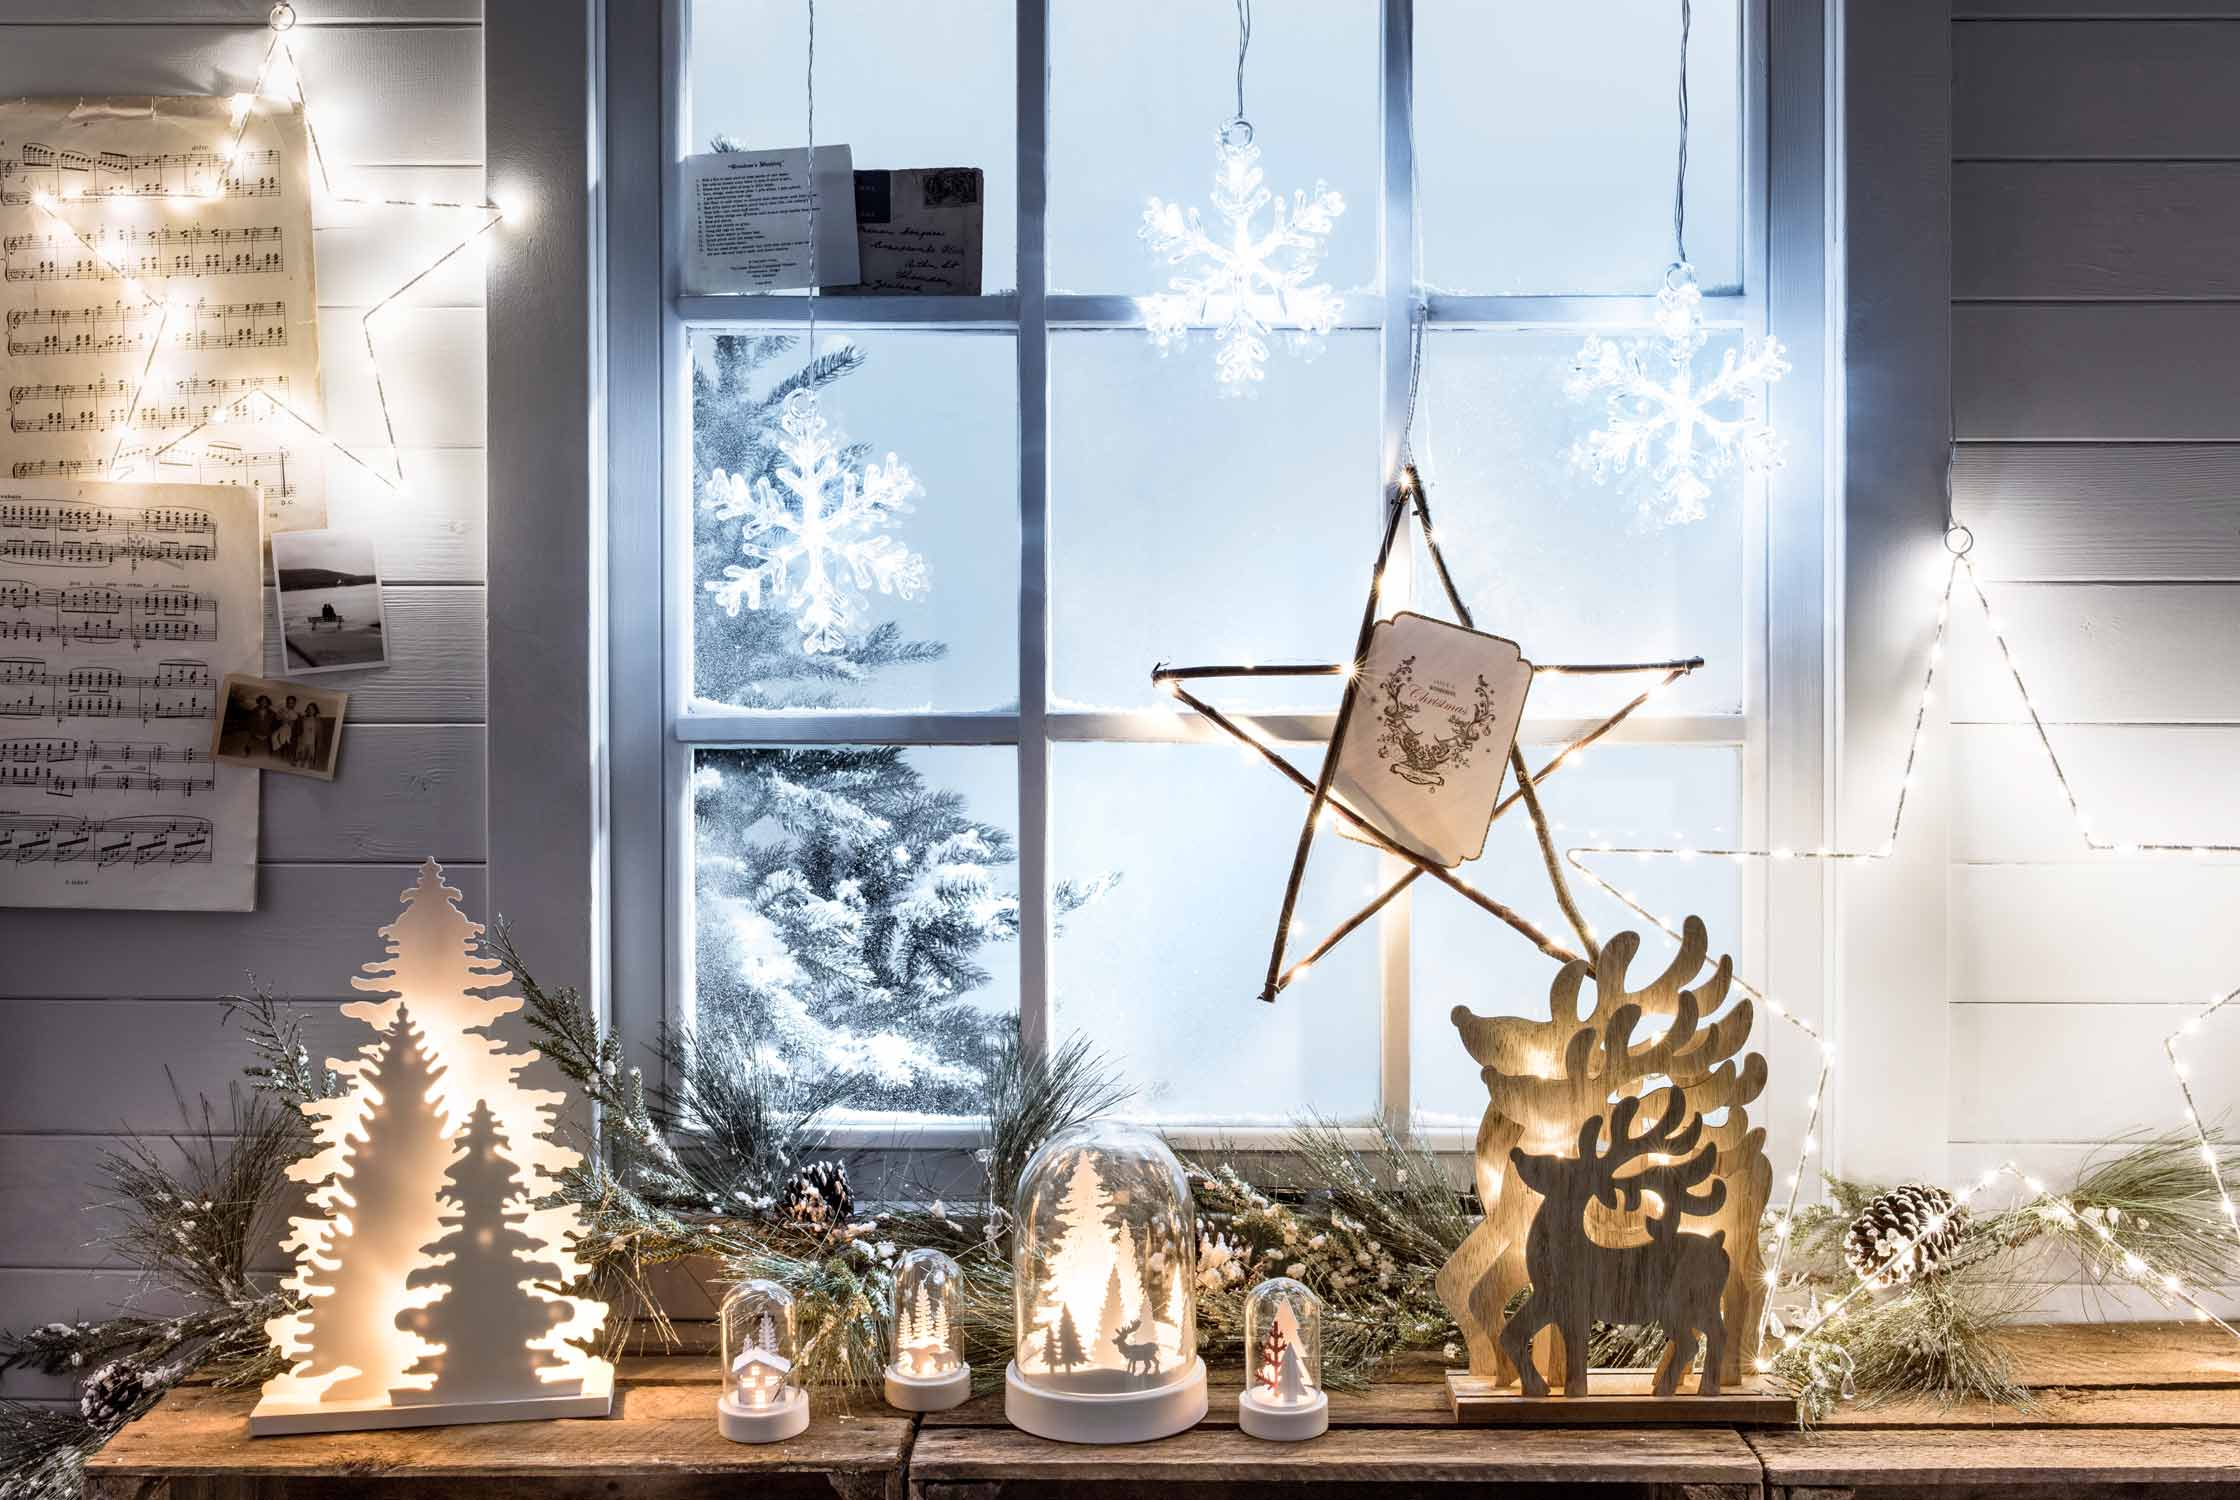 How to decorate your window for Christmas